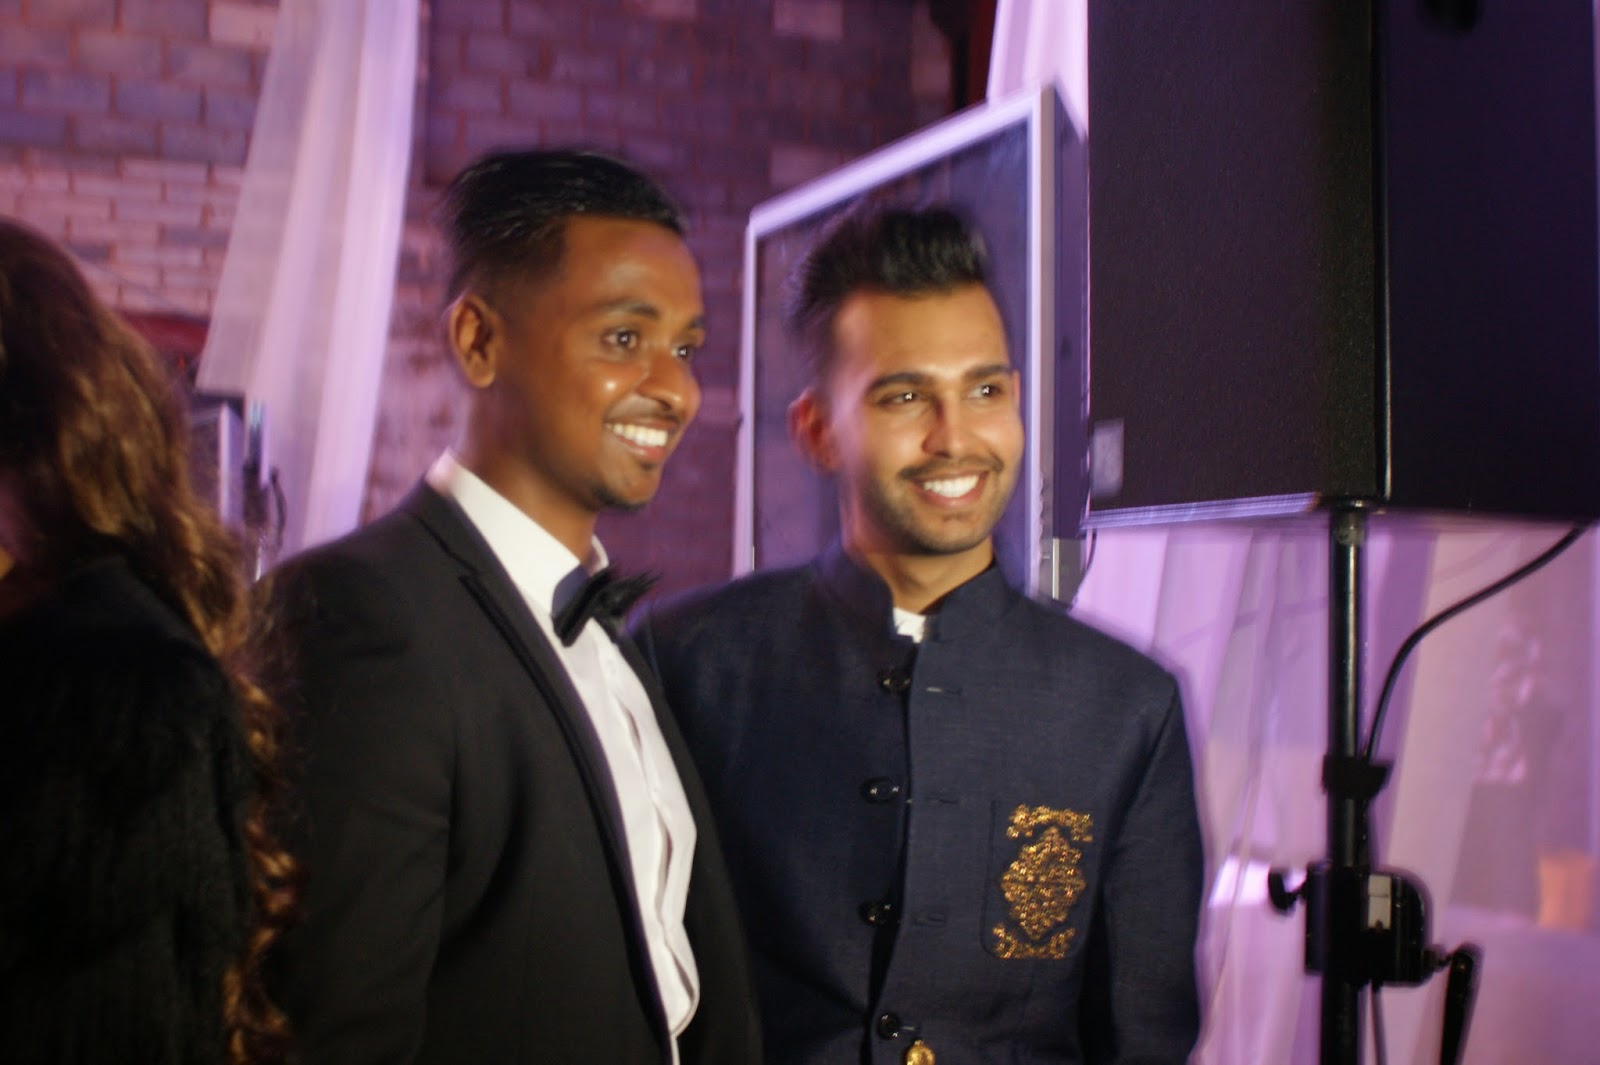 Aamir Naveed Hair School Launch, Aamir Naveed